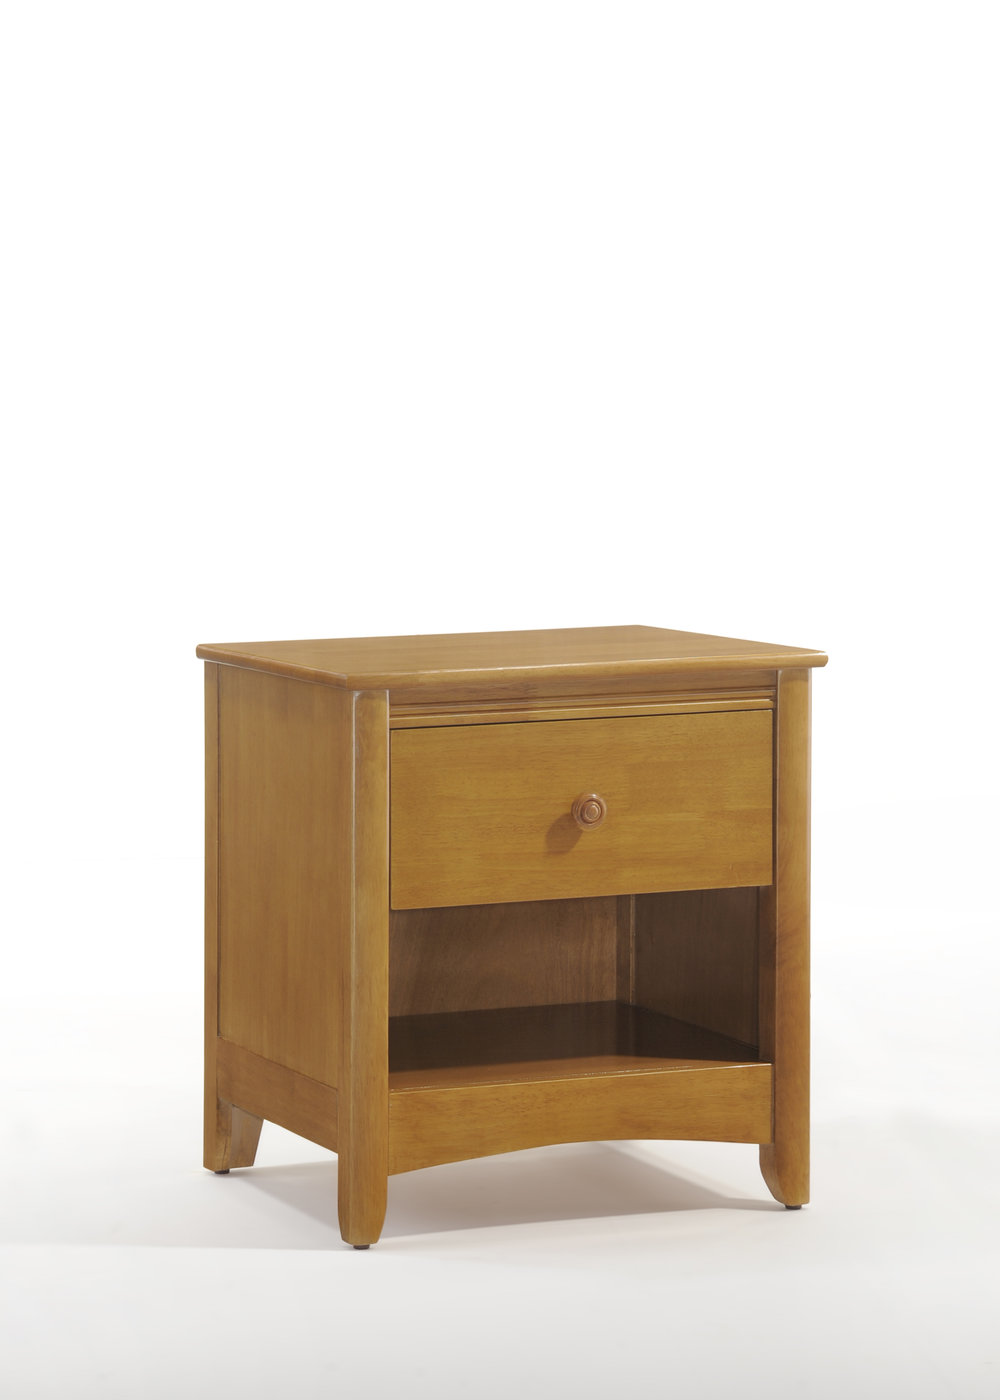 Secrets Nightstand Medium Oak Wood Knobs.jpg